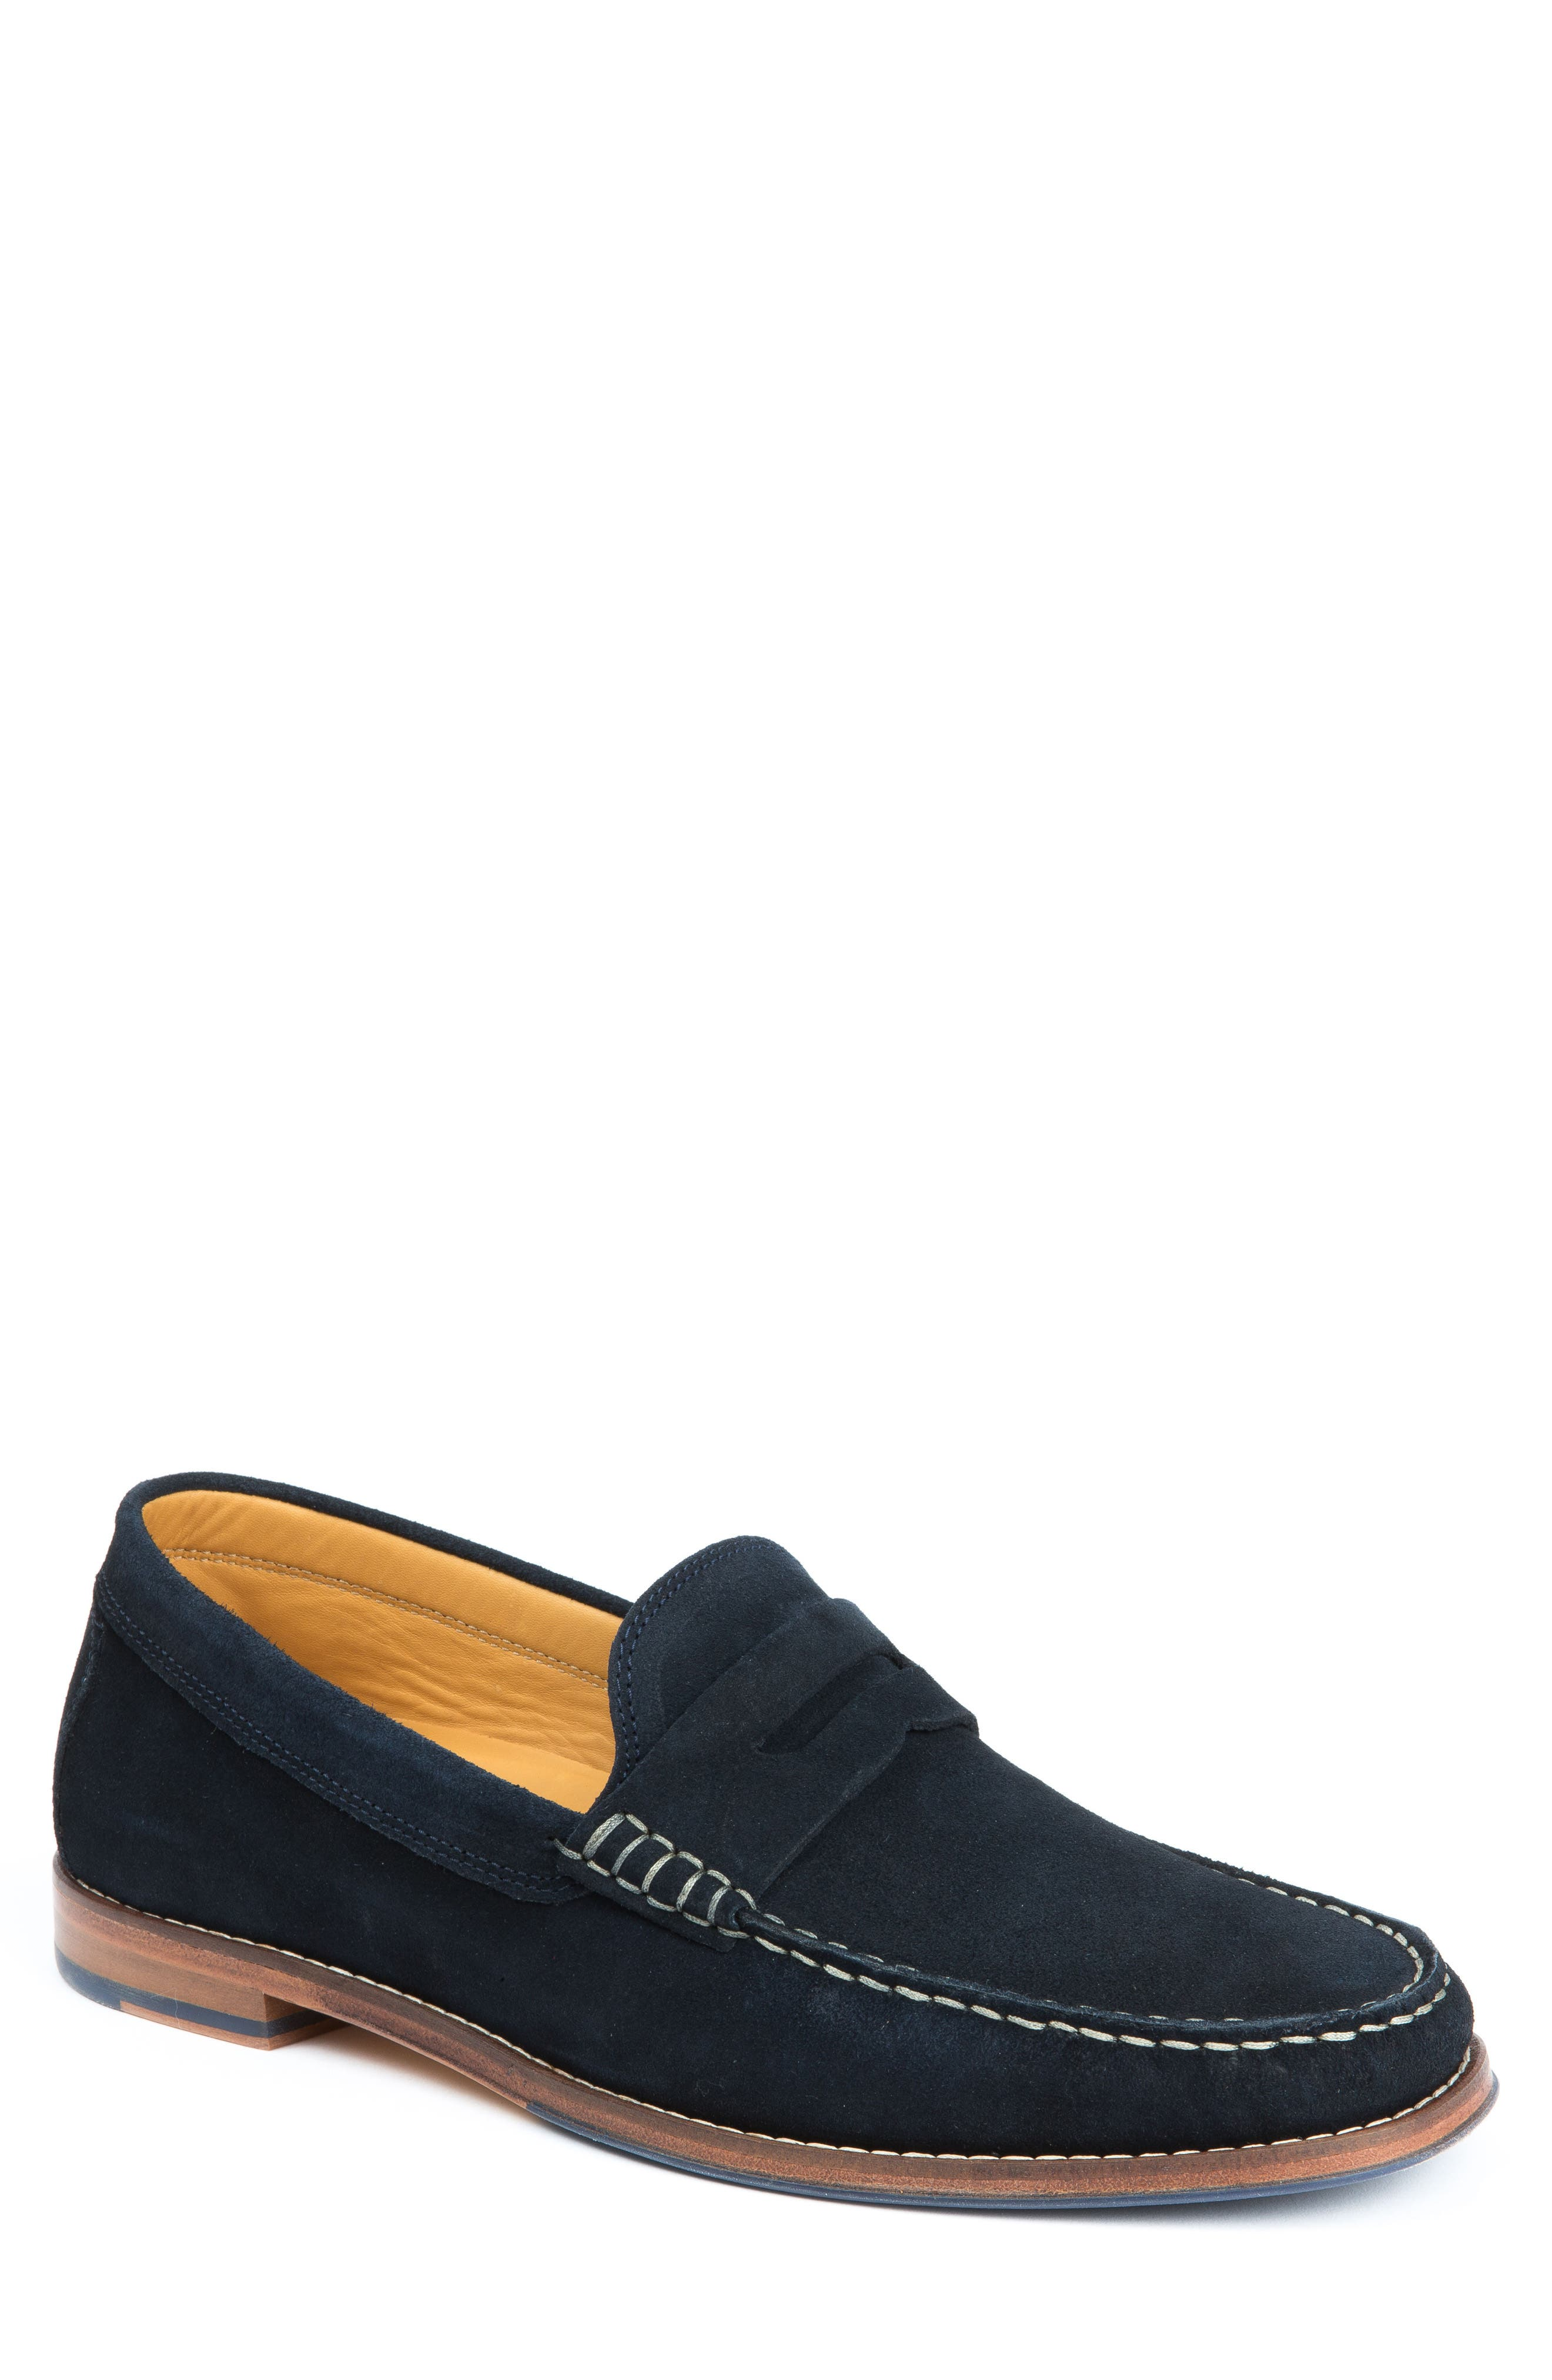 Ripleys Penny Loafer,                             Main thumbnail 1, color,                             Navy Suede